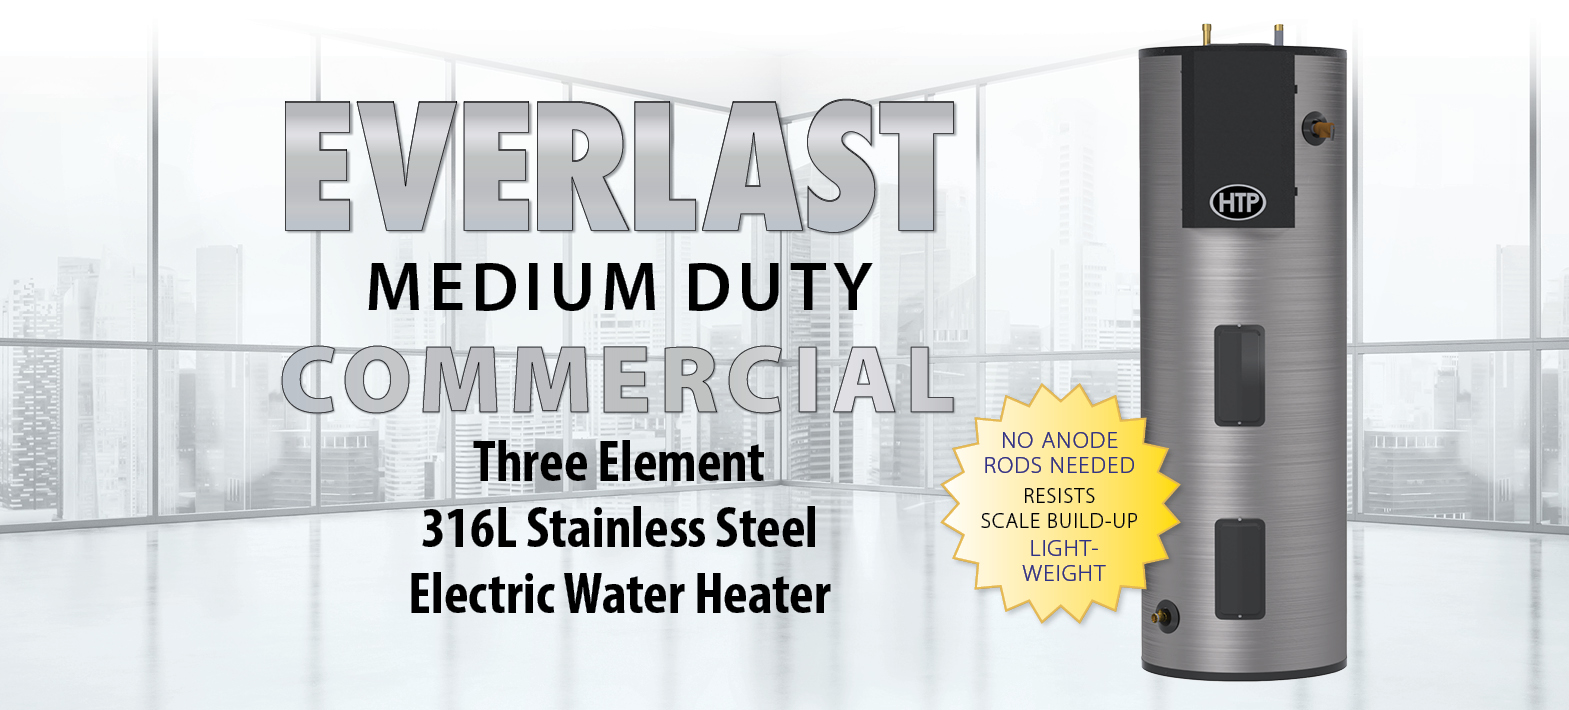 Everlast Medium Duty Commercial